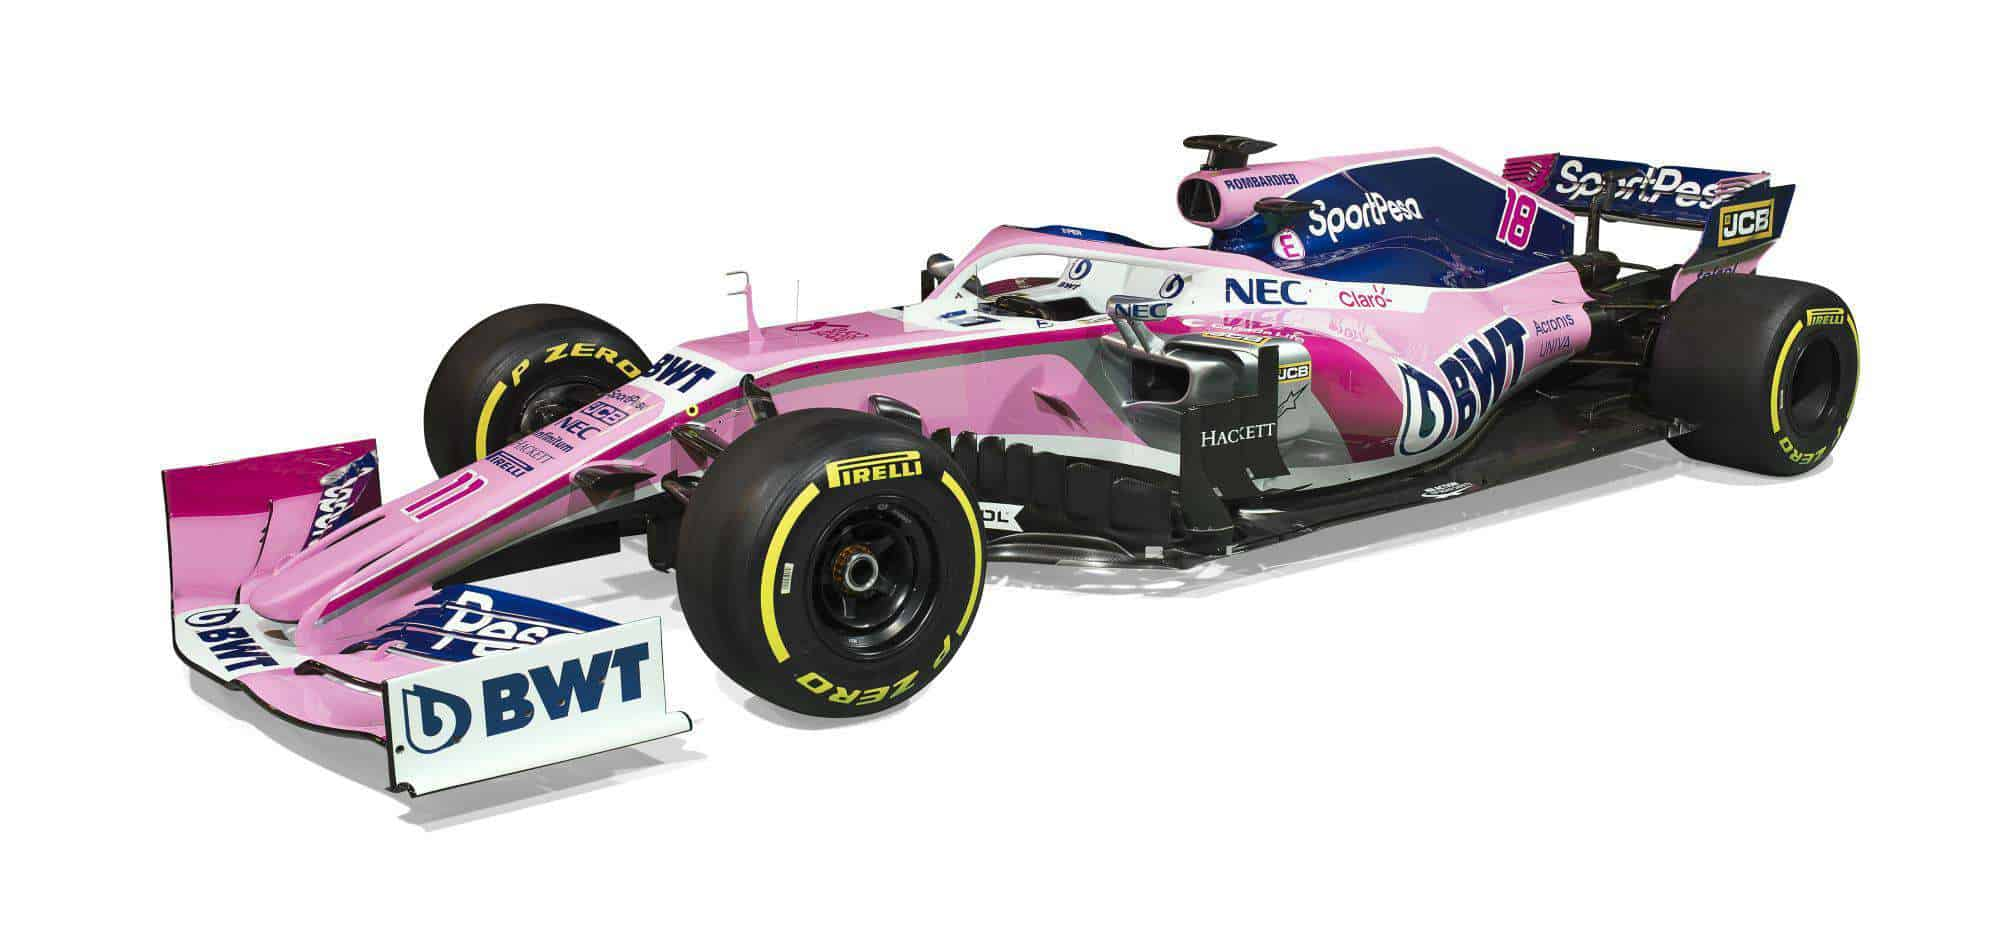 Sport Pesa Racing Point 2019 F1 launch Toronto studio photo car side angle view Photo Racing Point